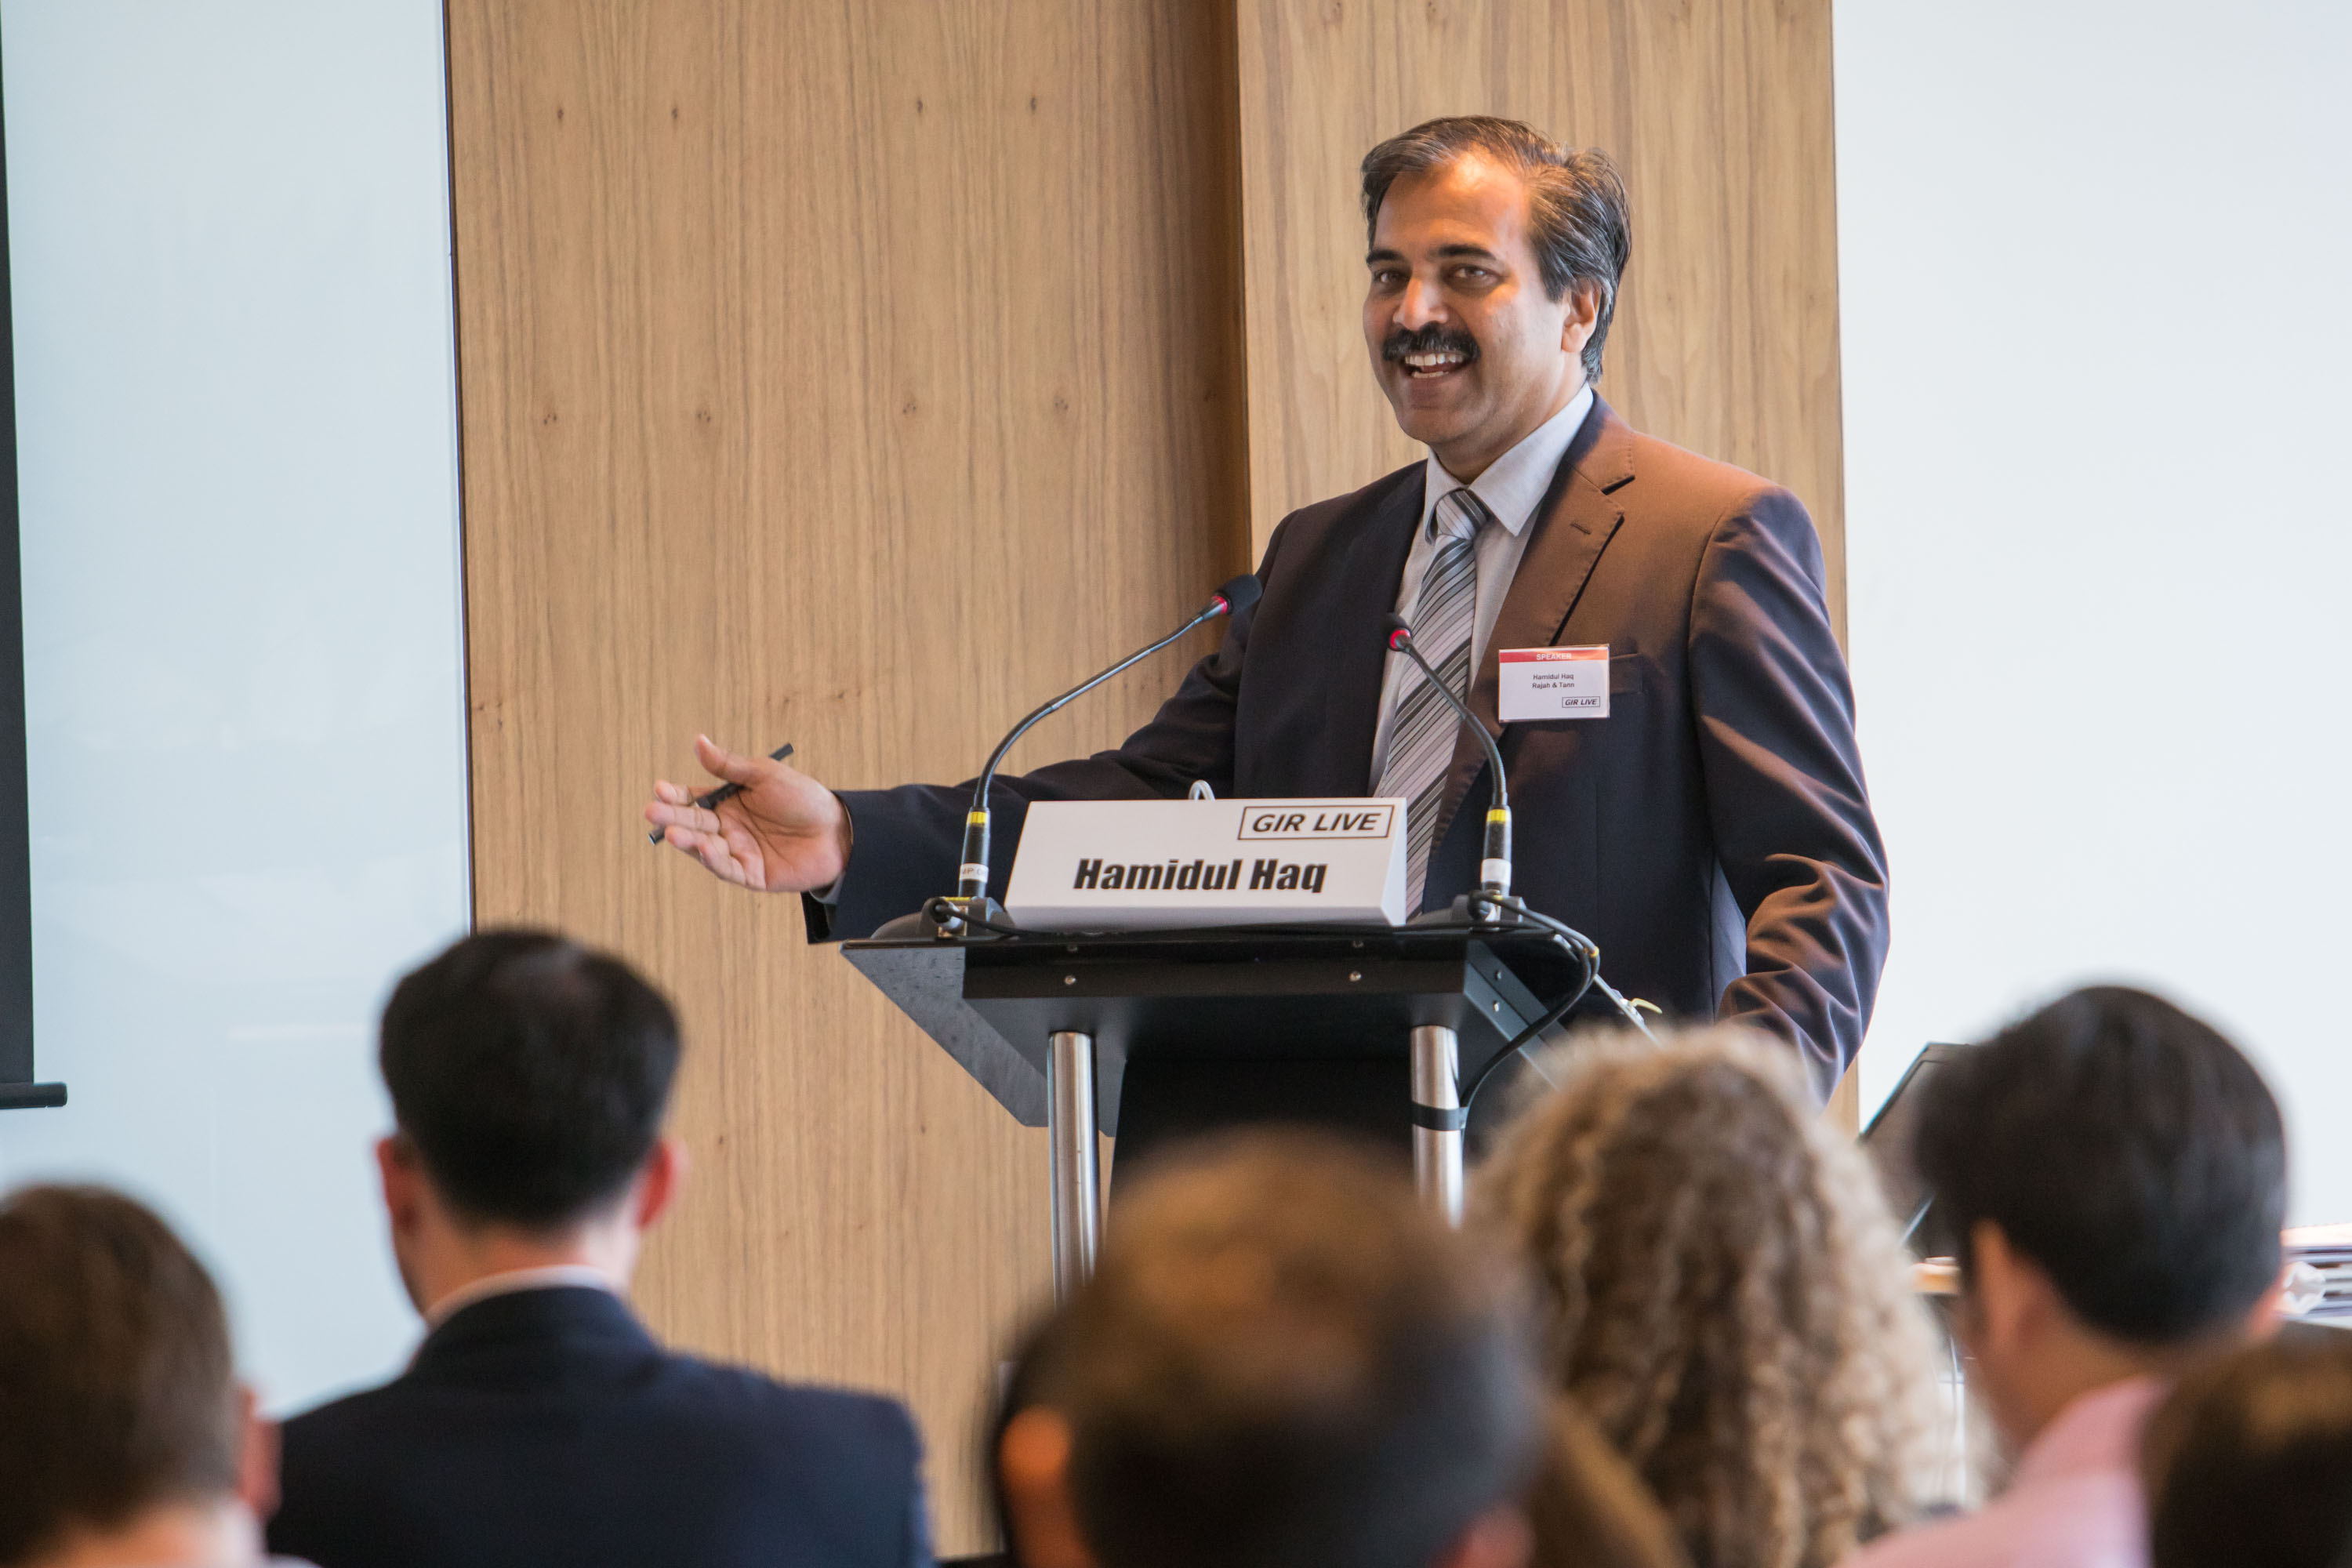 Hamidul Haq of Singapore's Rajah & Tann co-chaired the event with Maurice Burke of Hogan Lovells